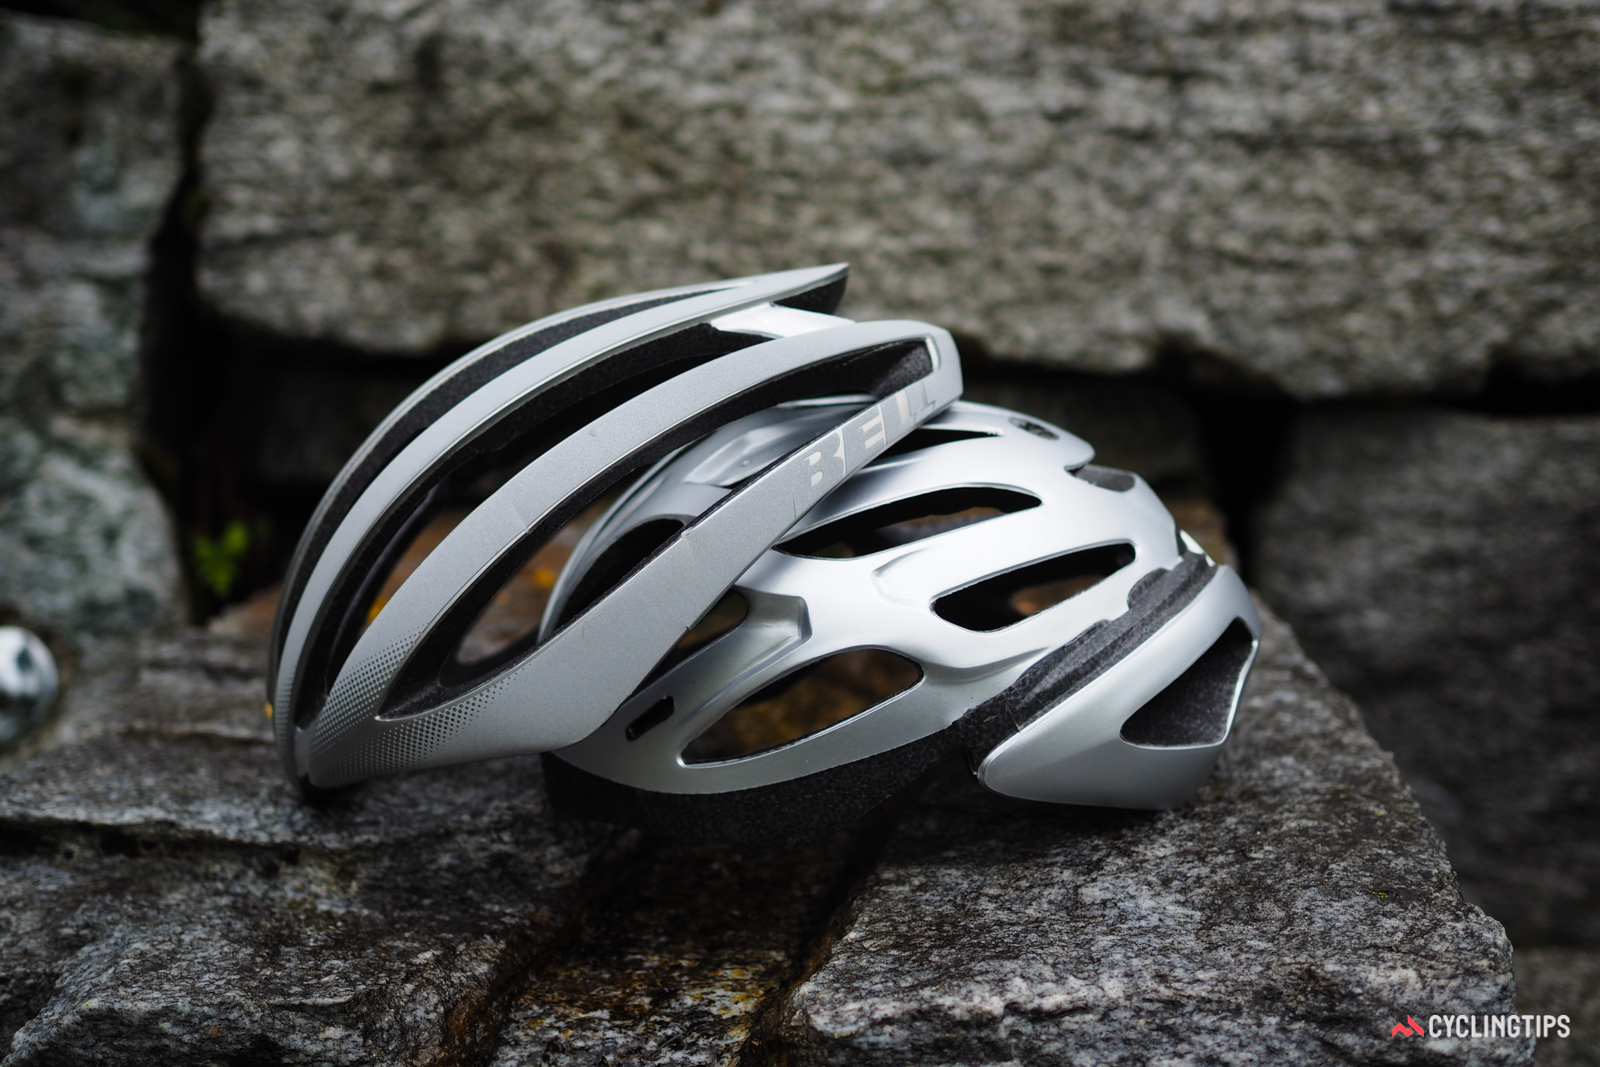 The Zephyr uses a novel helmet-within-a-helmet design, with each half featuring its own polycarbonate outer shell.